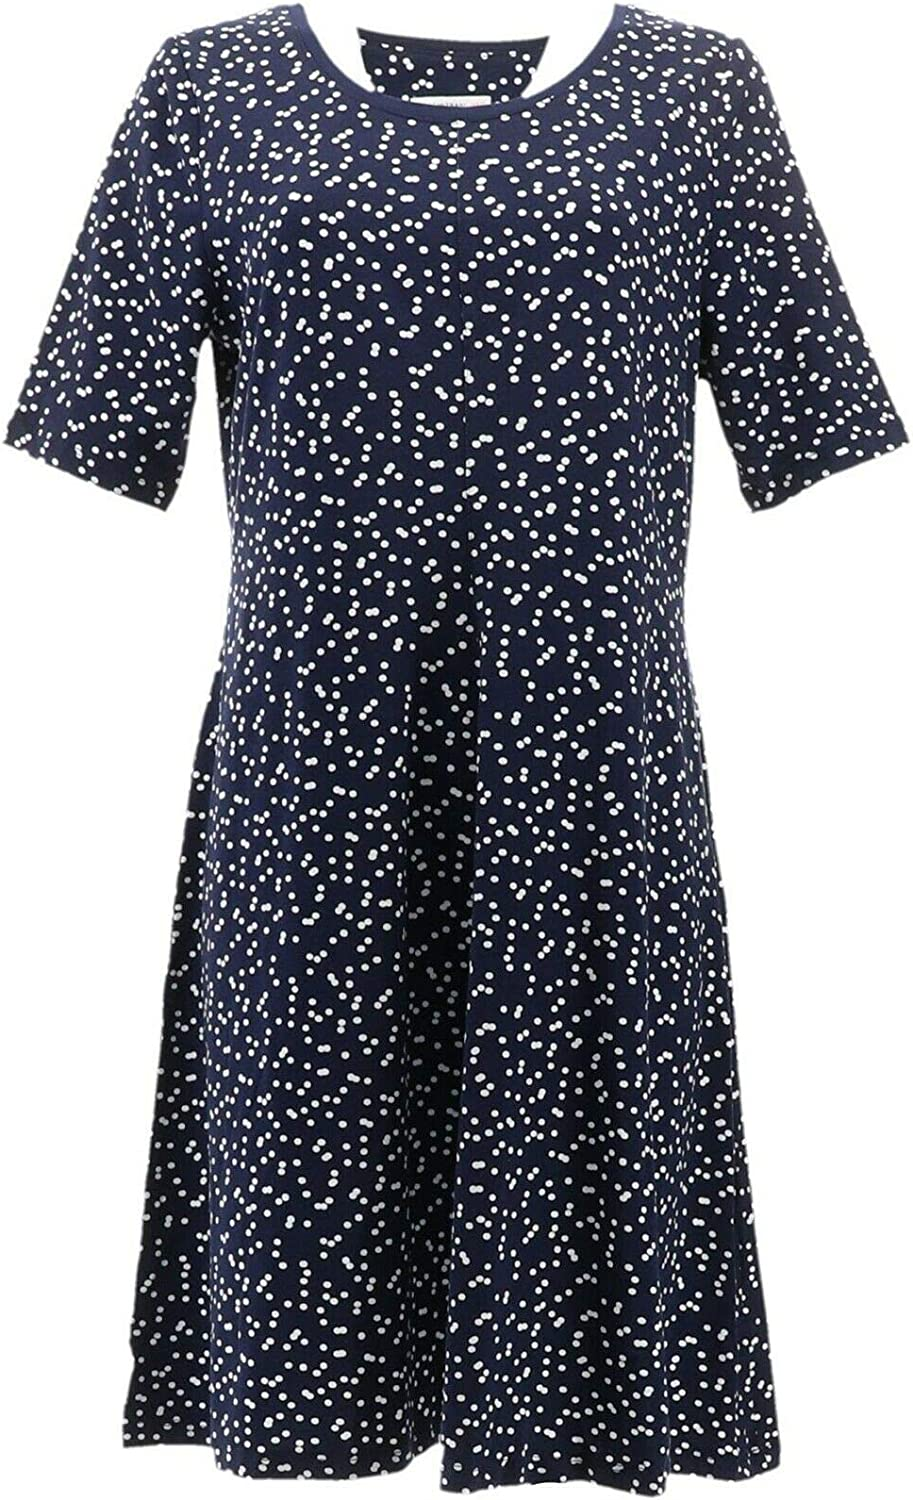 Isaac Fixed price for sale Mizrahi Knit Scatter A352282 New item Swing Dot Dress